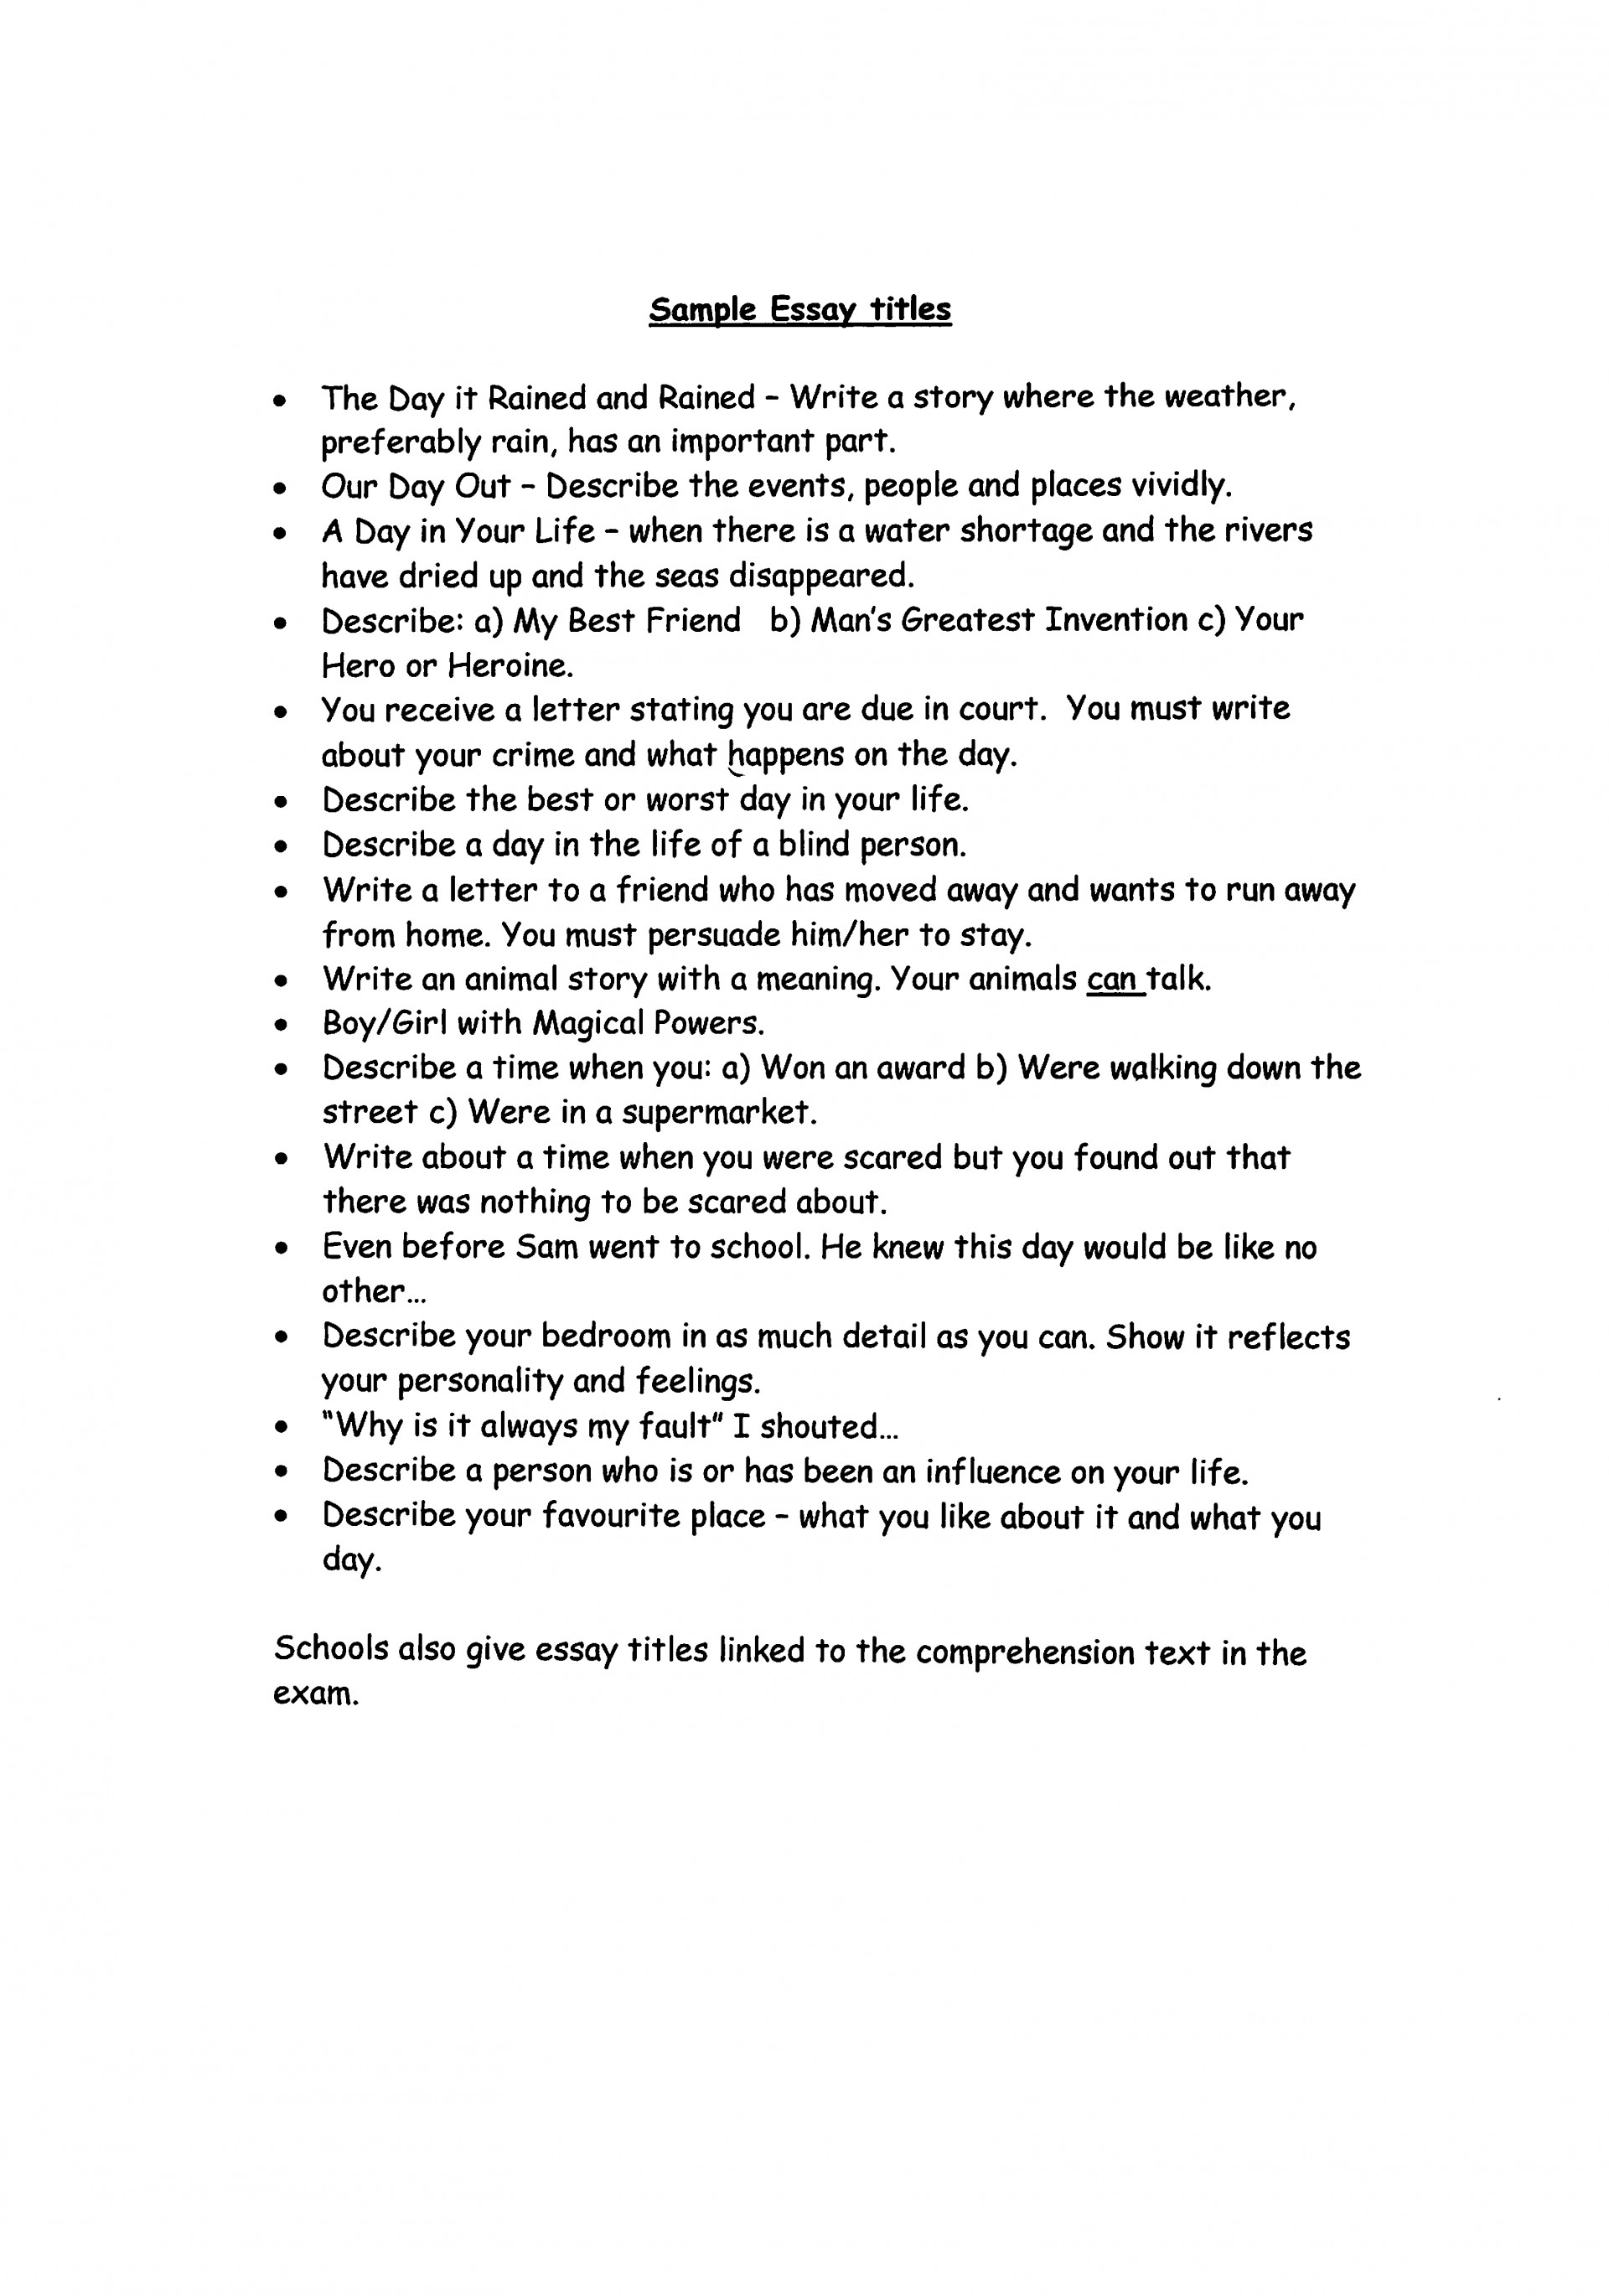 007 Essay On Childhood Memory My Memories Will R Example Outstanding 150 Words Ideas Examples 1920